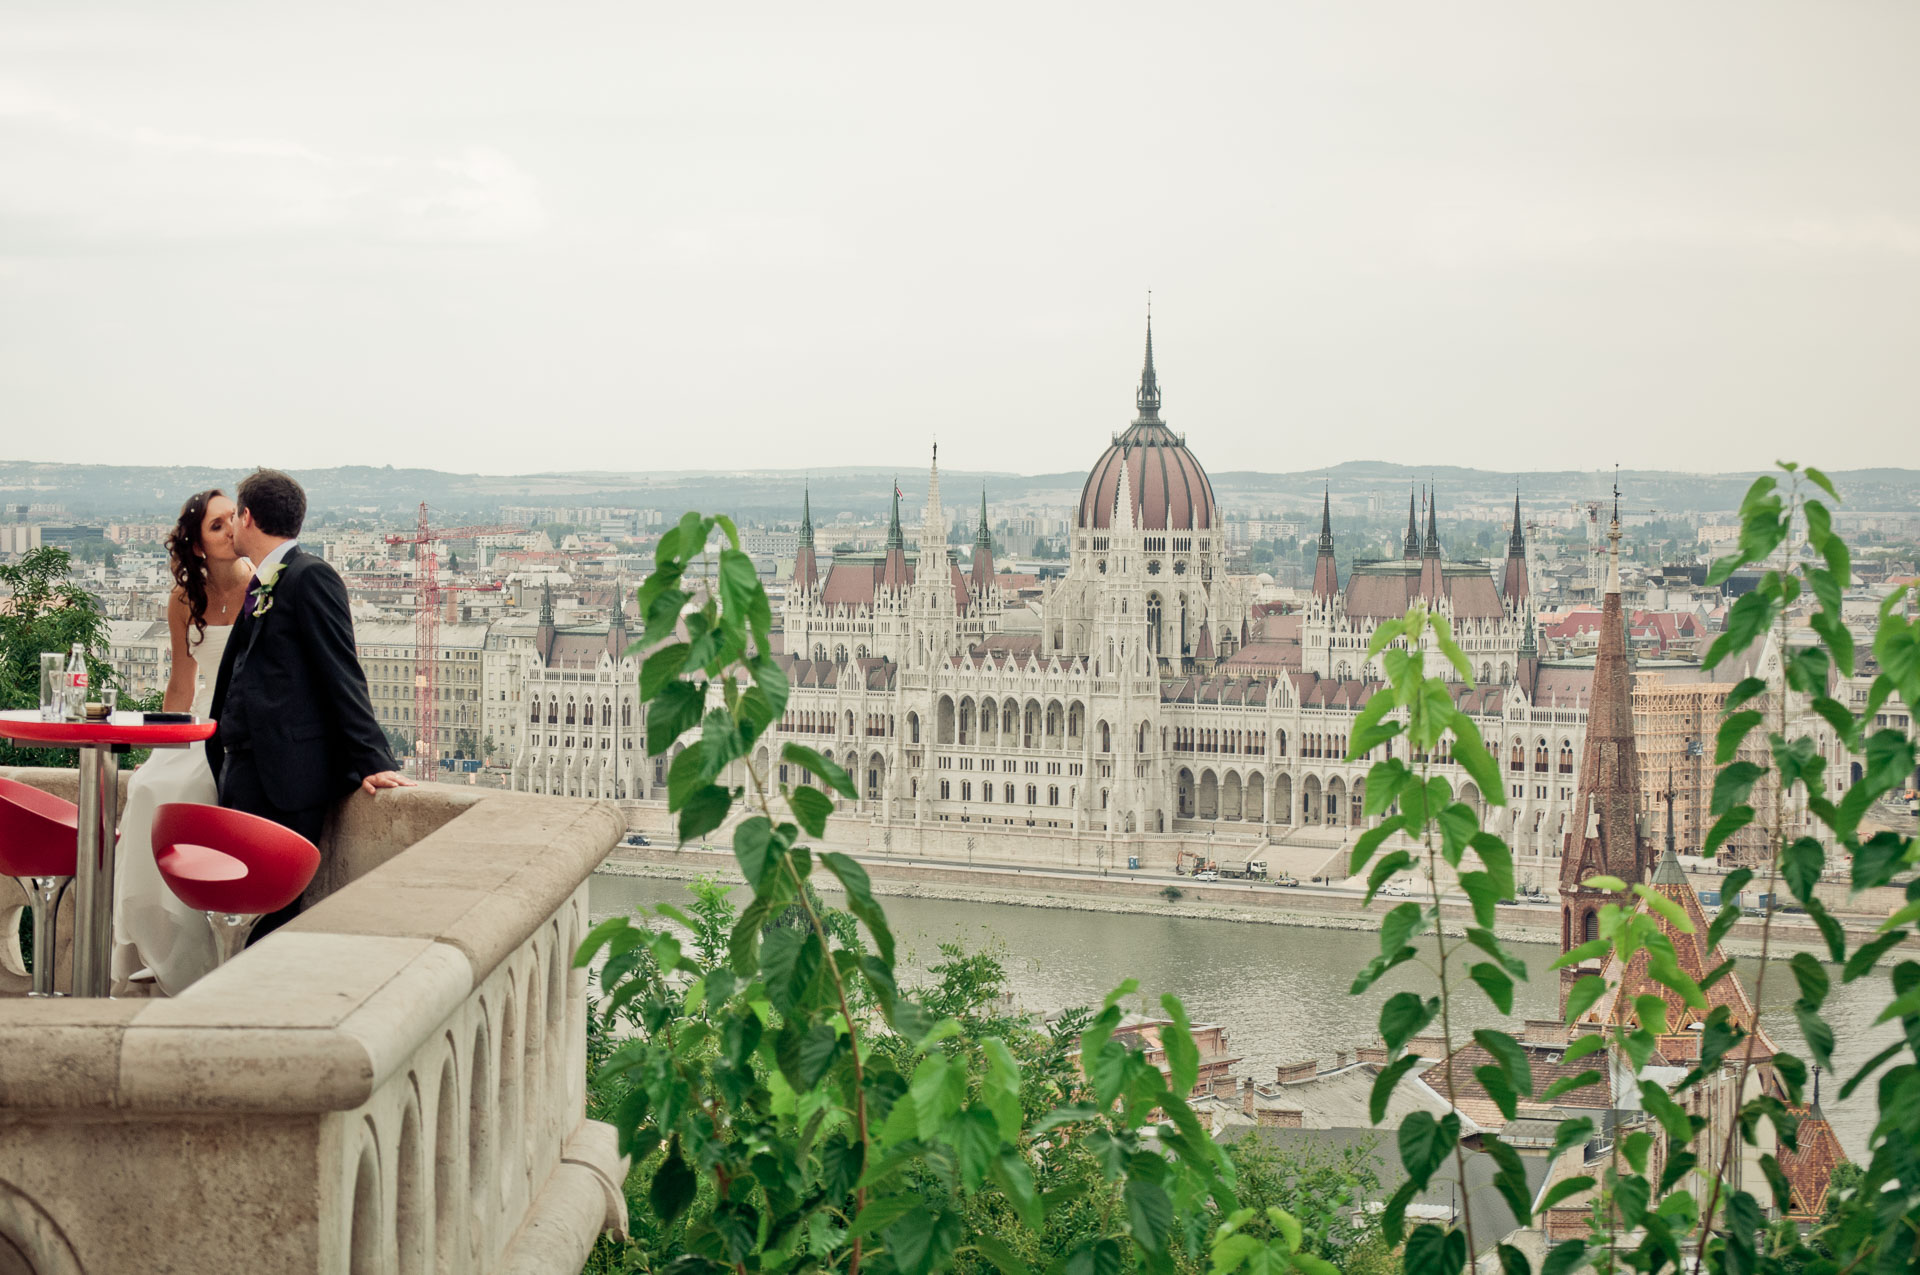 Romantic city elopement and honeymoon in Budapest - elopement photographers love to take shots on the Castle Hill in Budapest